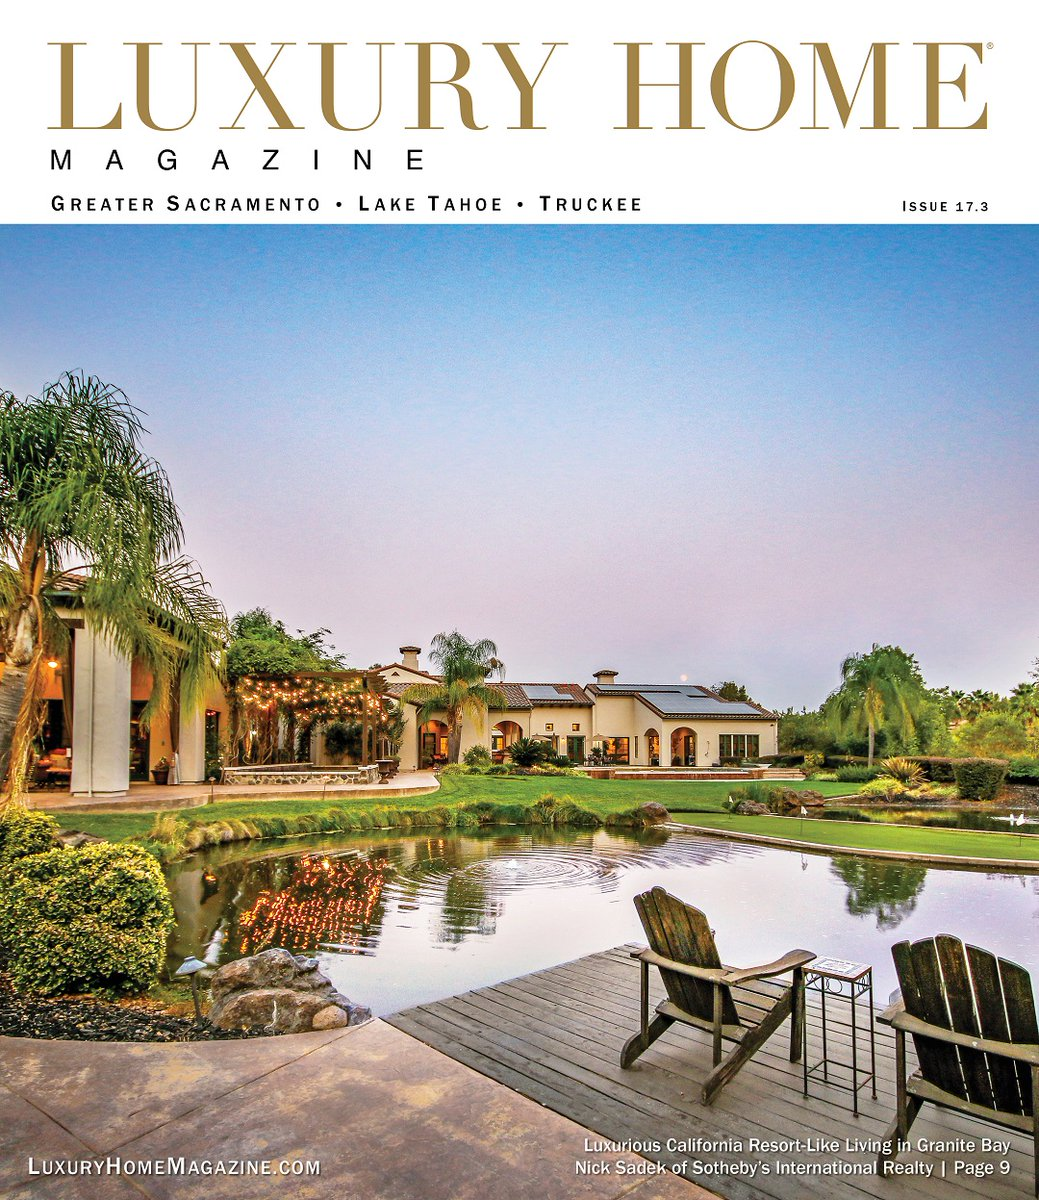 LHM Greater Sacramento Issue 17.3 has officially been released! Check it out at: https://t.co/xRXKOCTfHW Presented by: Nick Sadek   Nick Sadek Sotheby's Intl RE Front Cover Photography: Holly Daley  #luxury #home #magazine #realestate #realtor #design #architecture #california https://t.co/tZuIdnHgLm